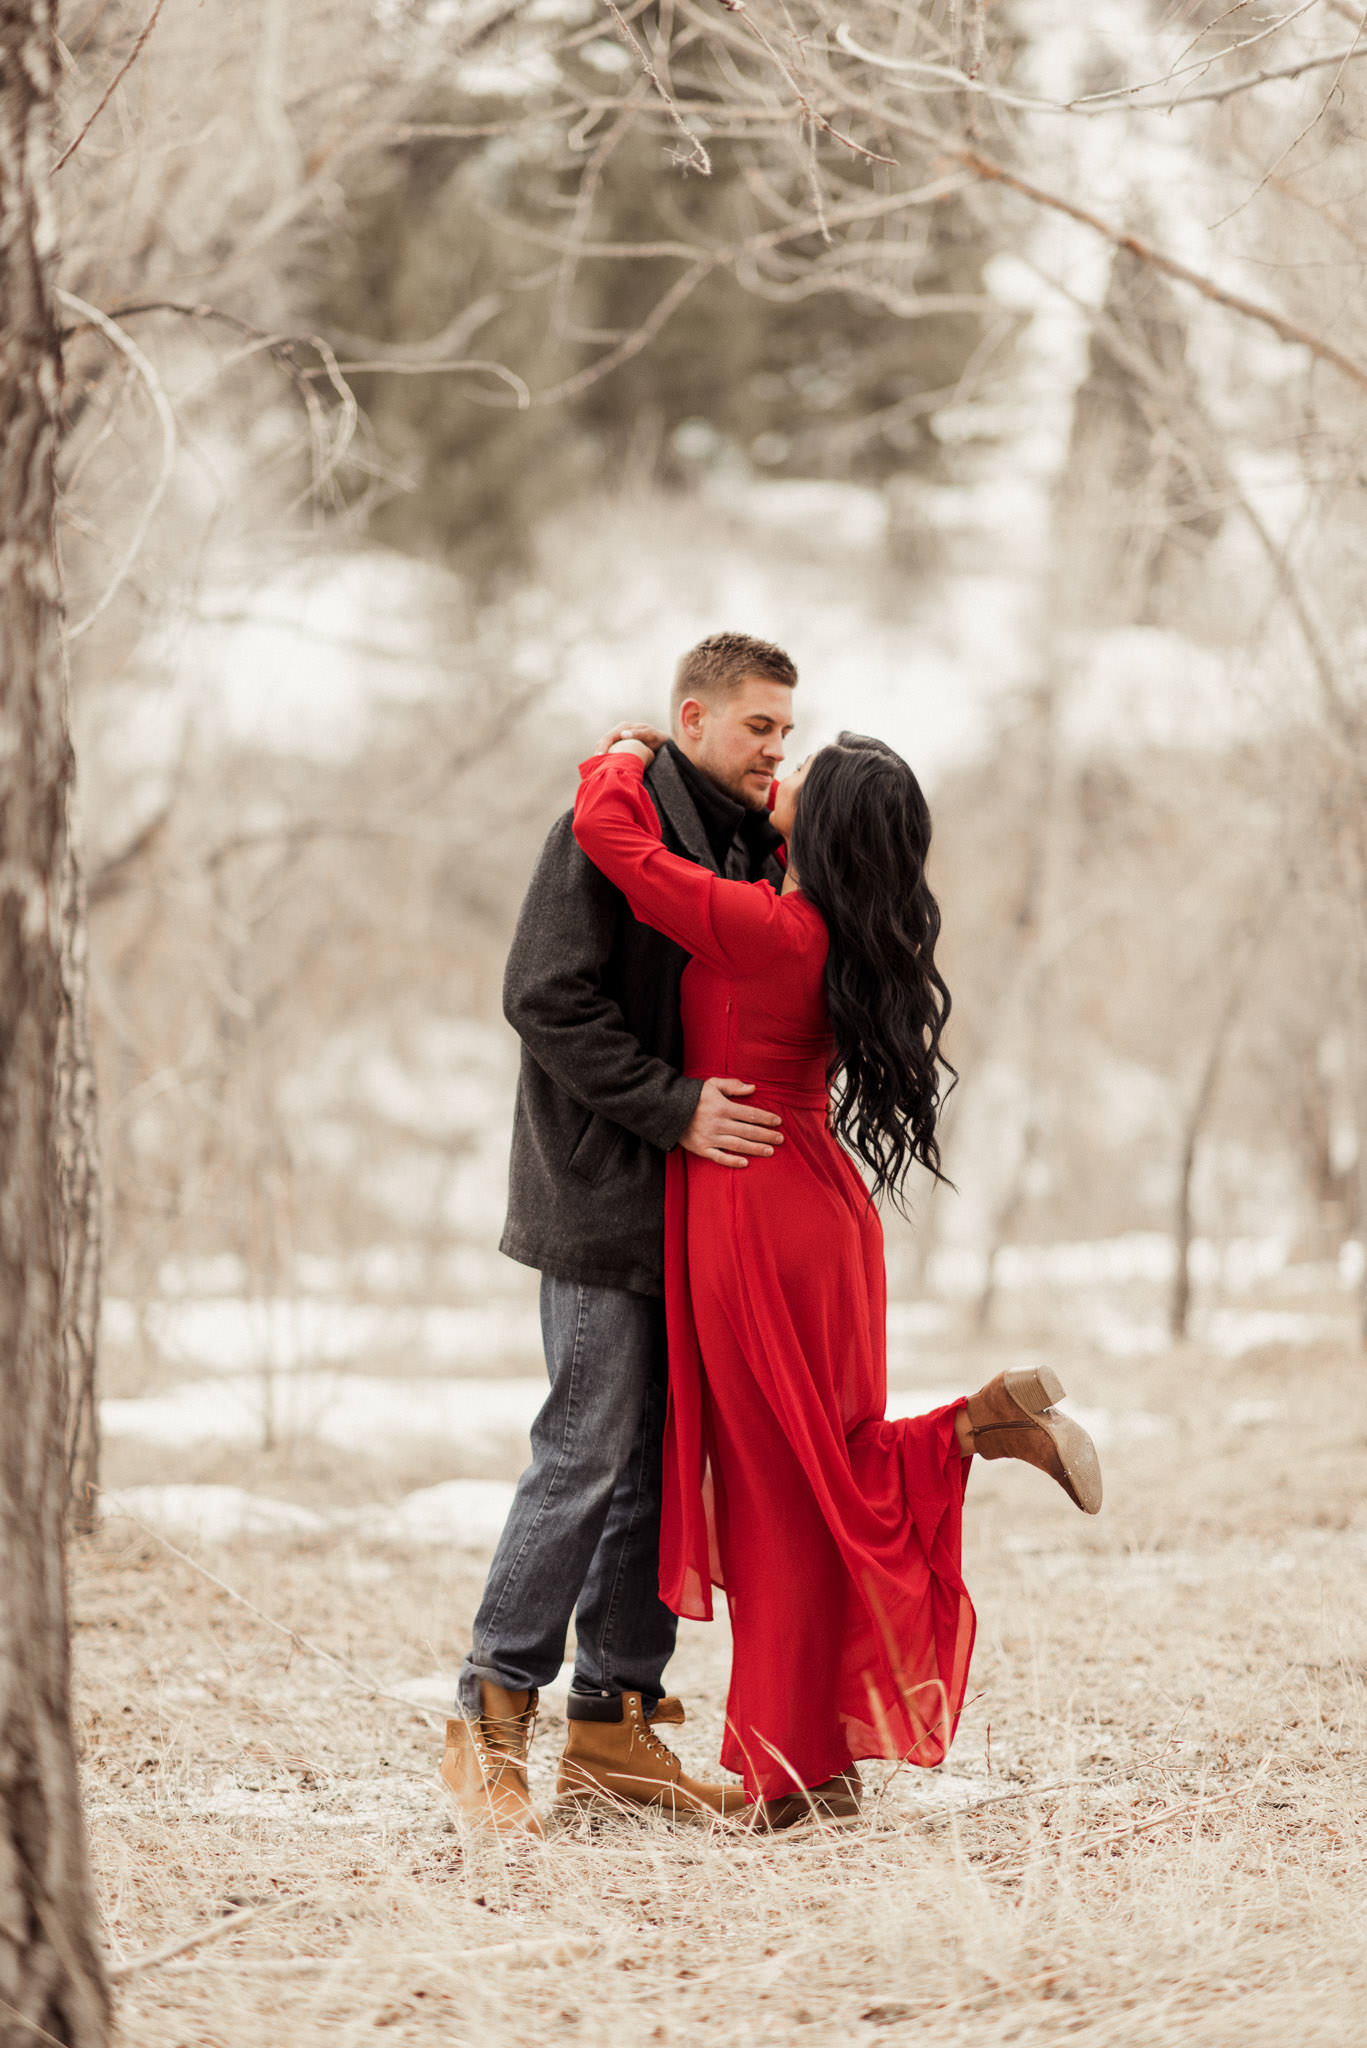 sandra-ryan-colorado-winter-snow-engagement-couples-valentines-red-houston-photographer-sm-28.jpg